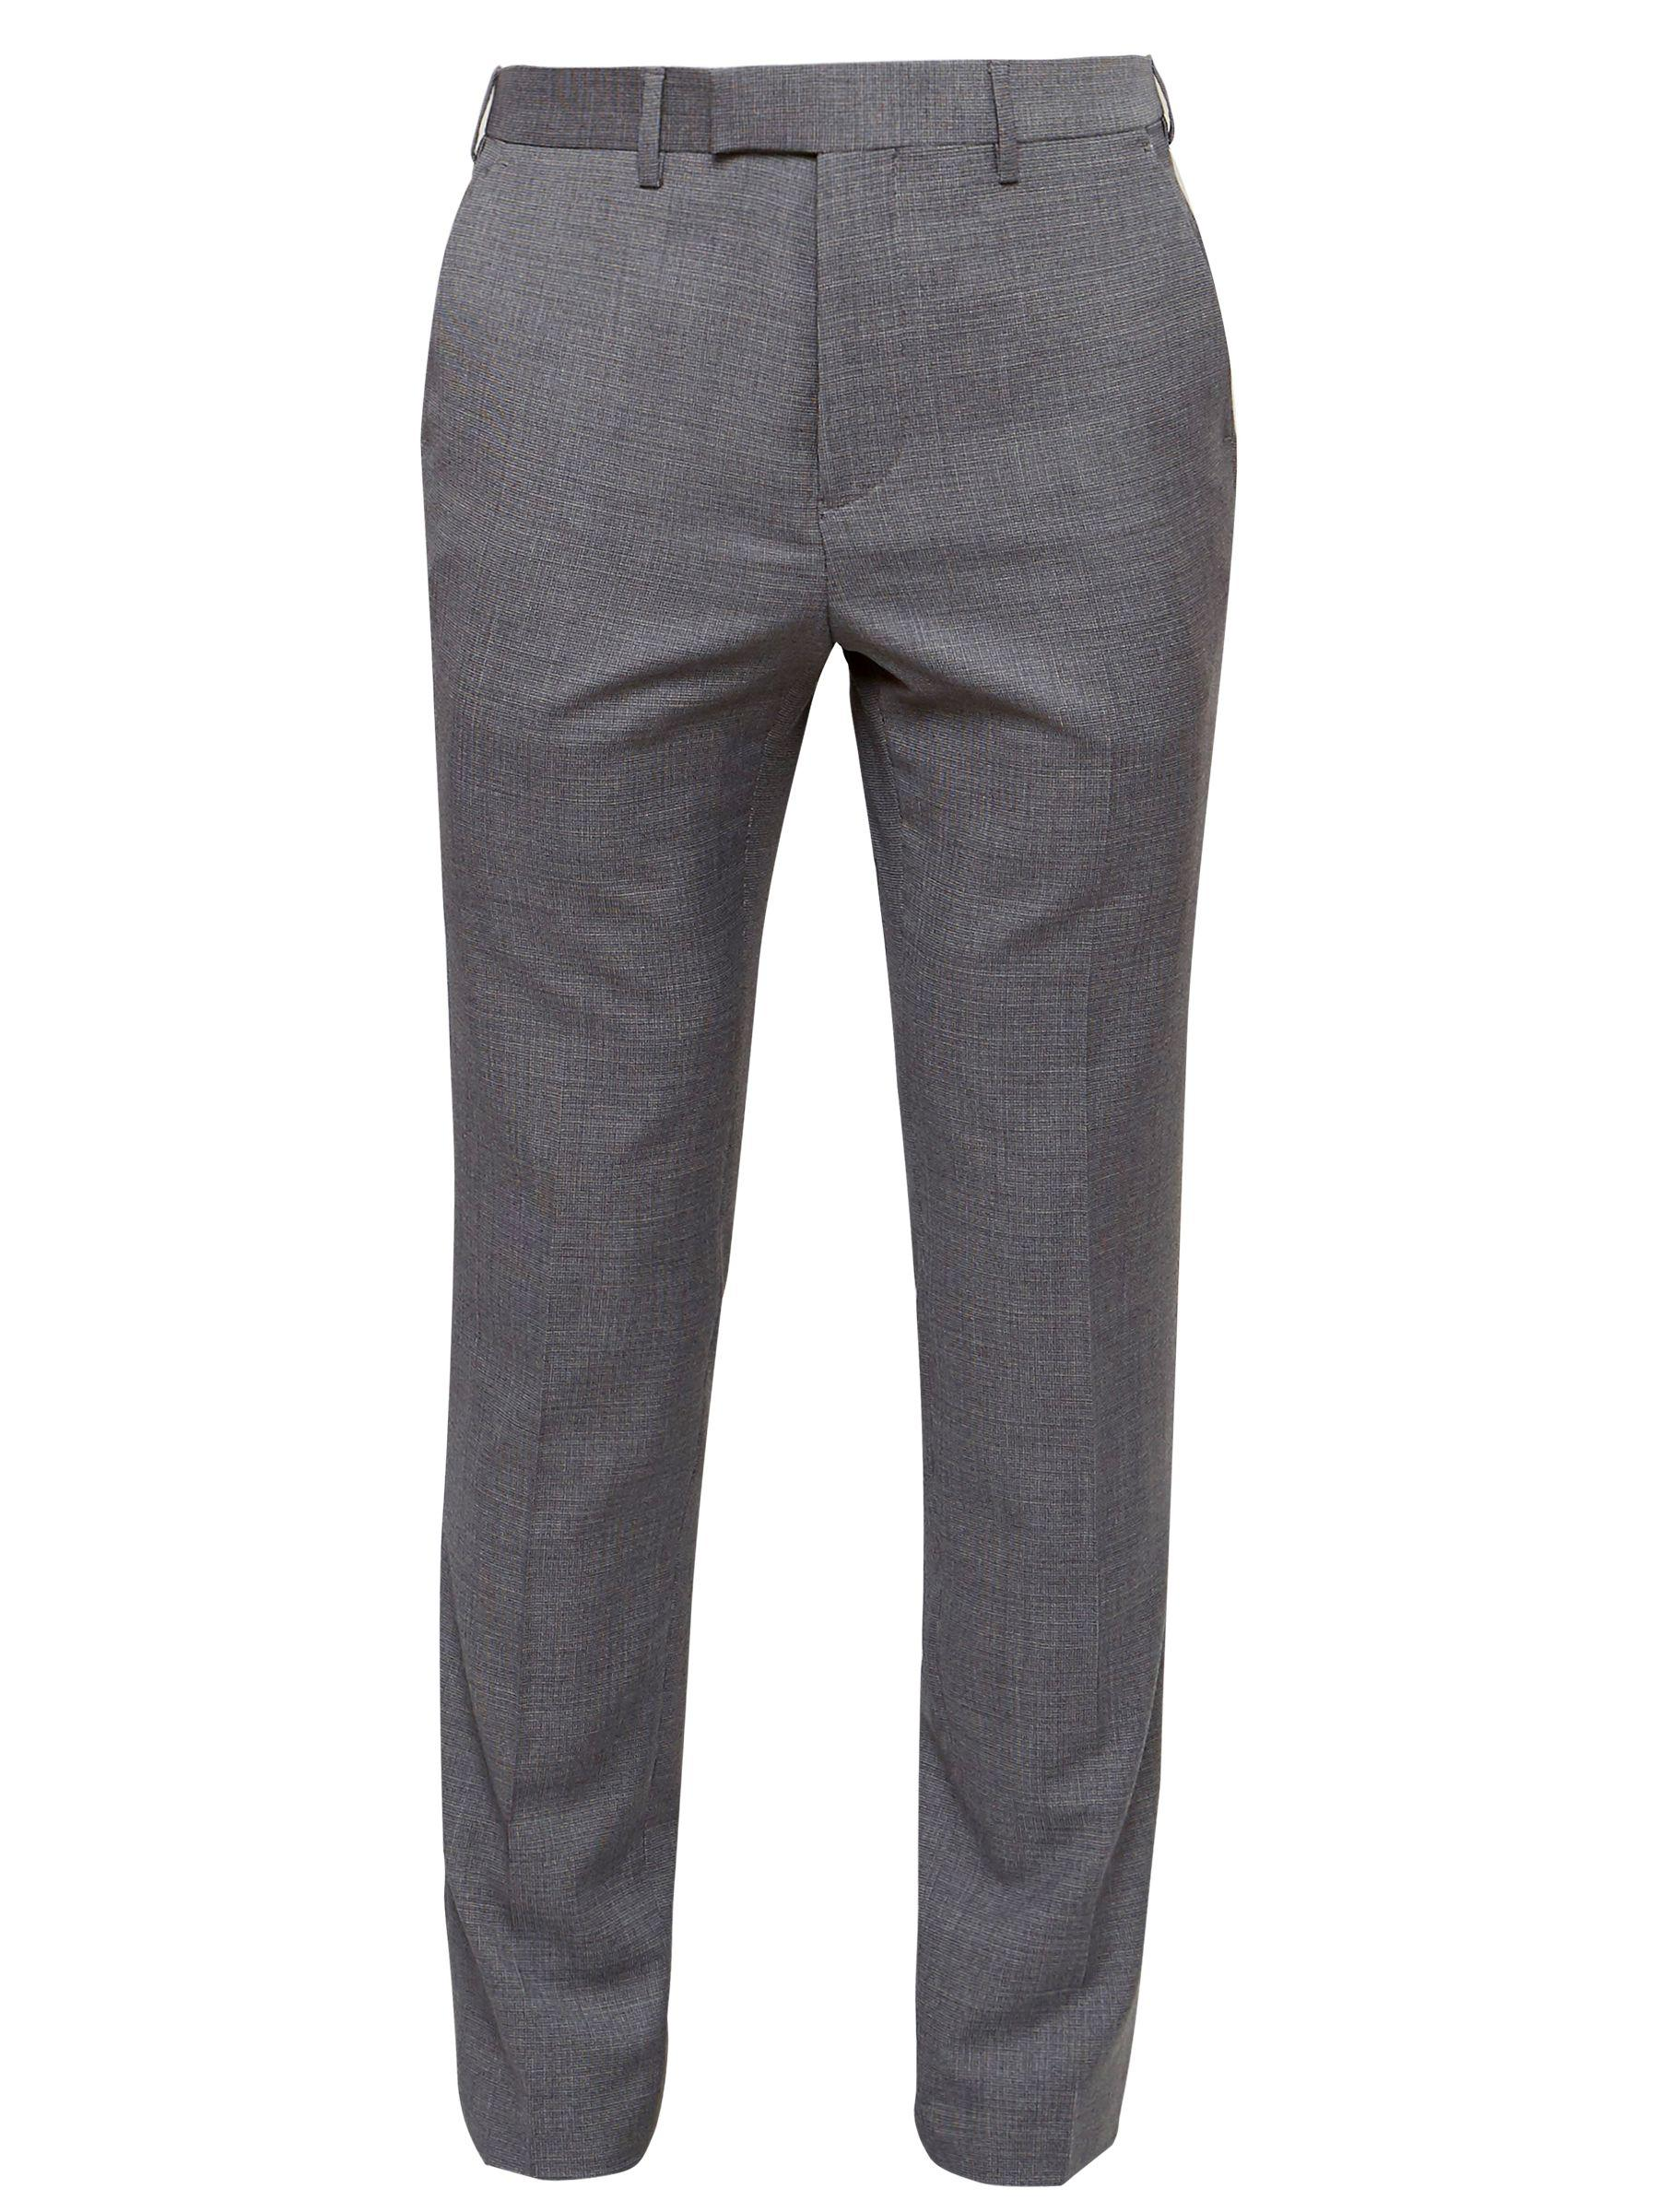 Ted Baker Tippedj Wool Semi Plain Tailored Suit Trousers in Grey (Grey) for Men